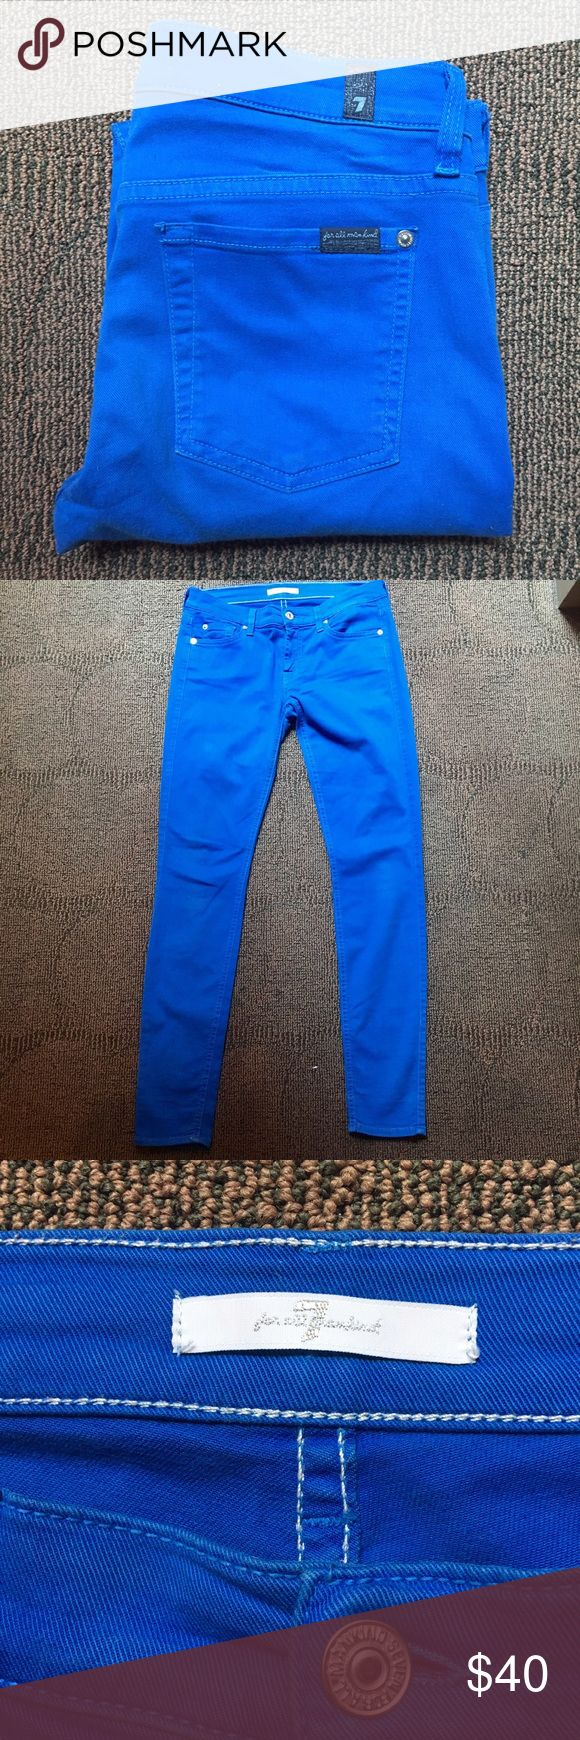 7 for all mankind Royal Blue Stretch pants Amazing stretch jeans from 7 for all mankind -- bright royal blue color -- perfect for summer -- no stains rips holes  tears or odors -- condition is built into the price 7 For All Mankind Jeans Skinny